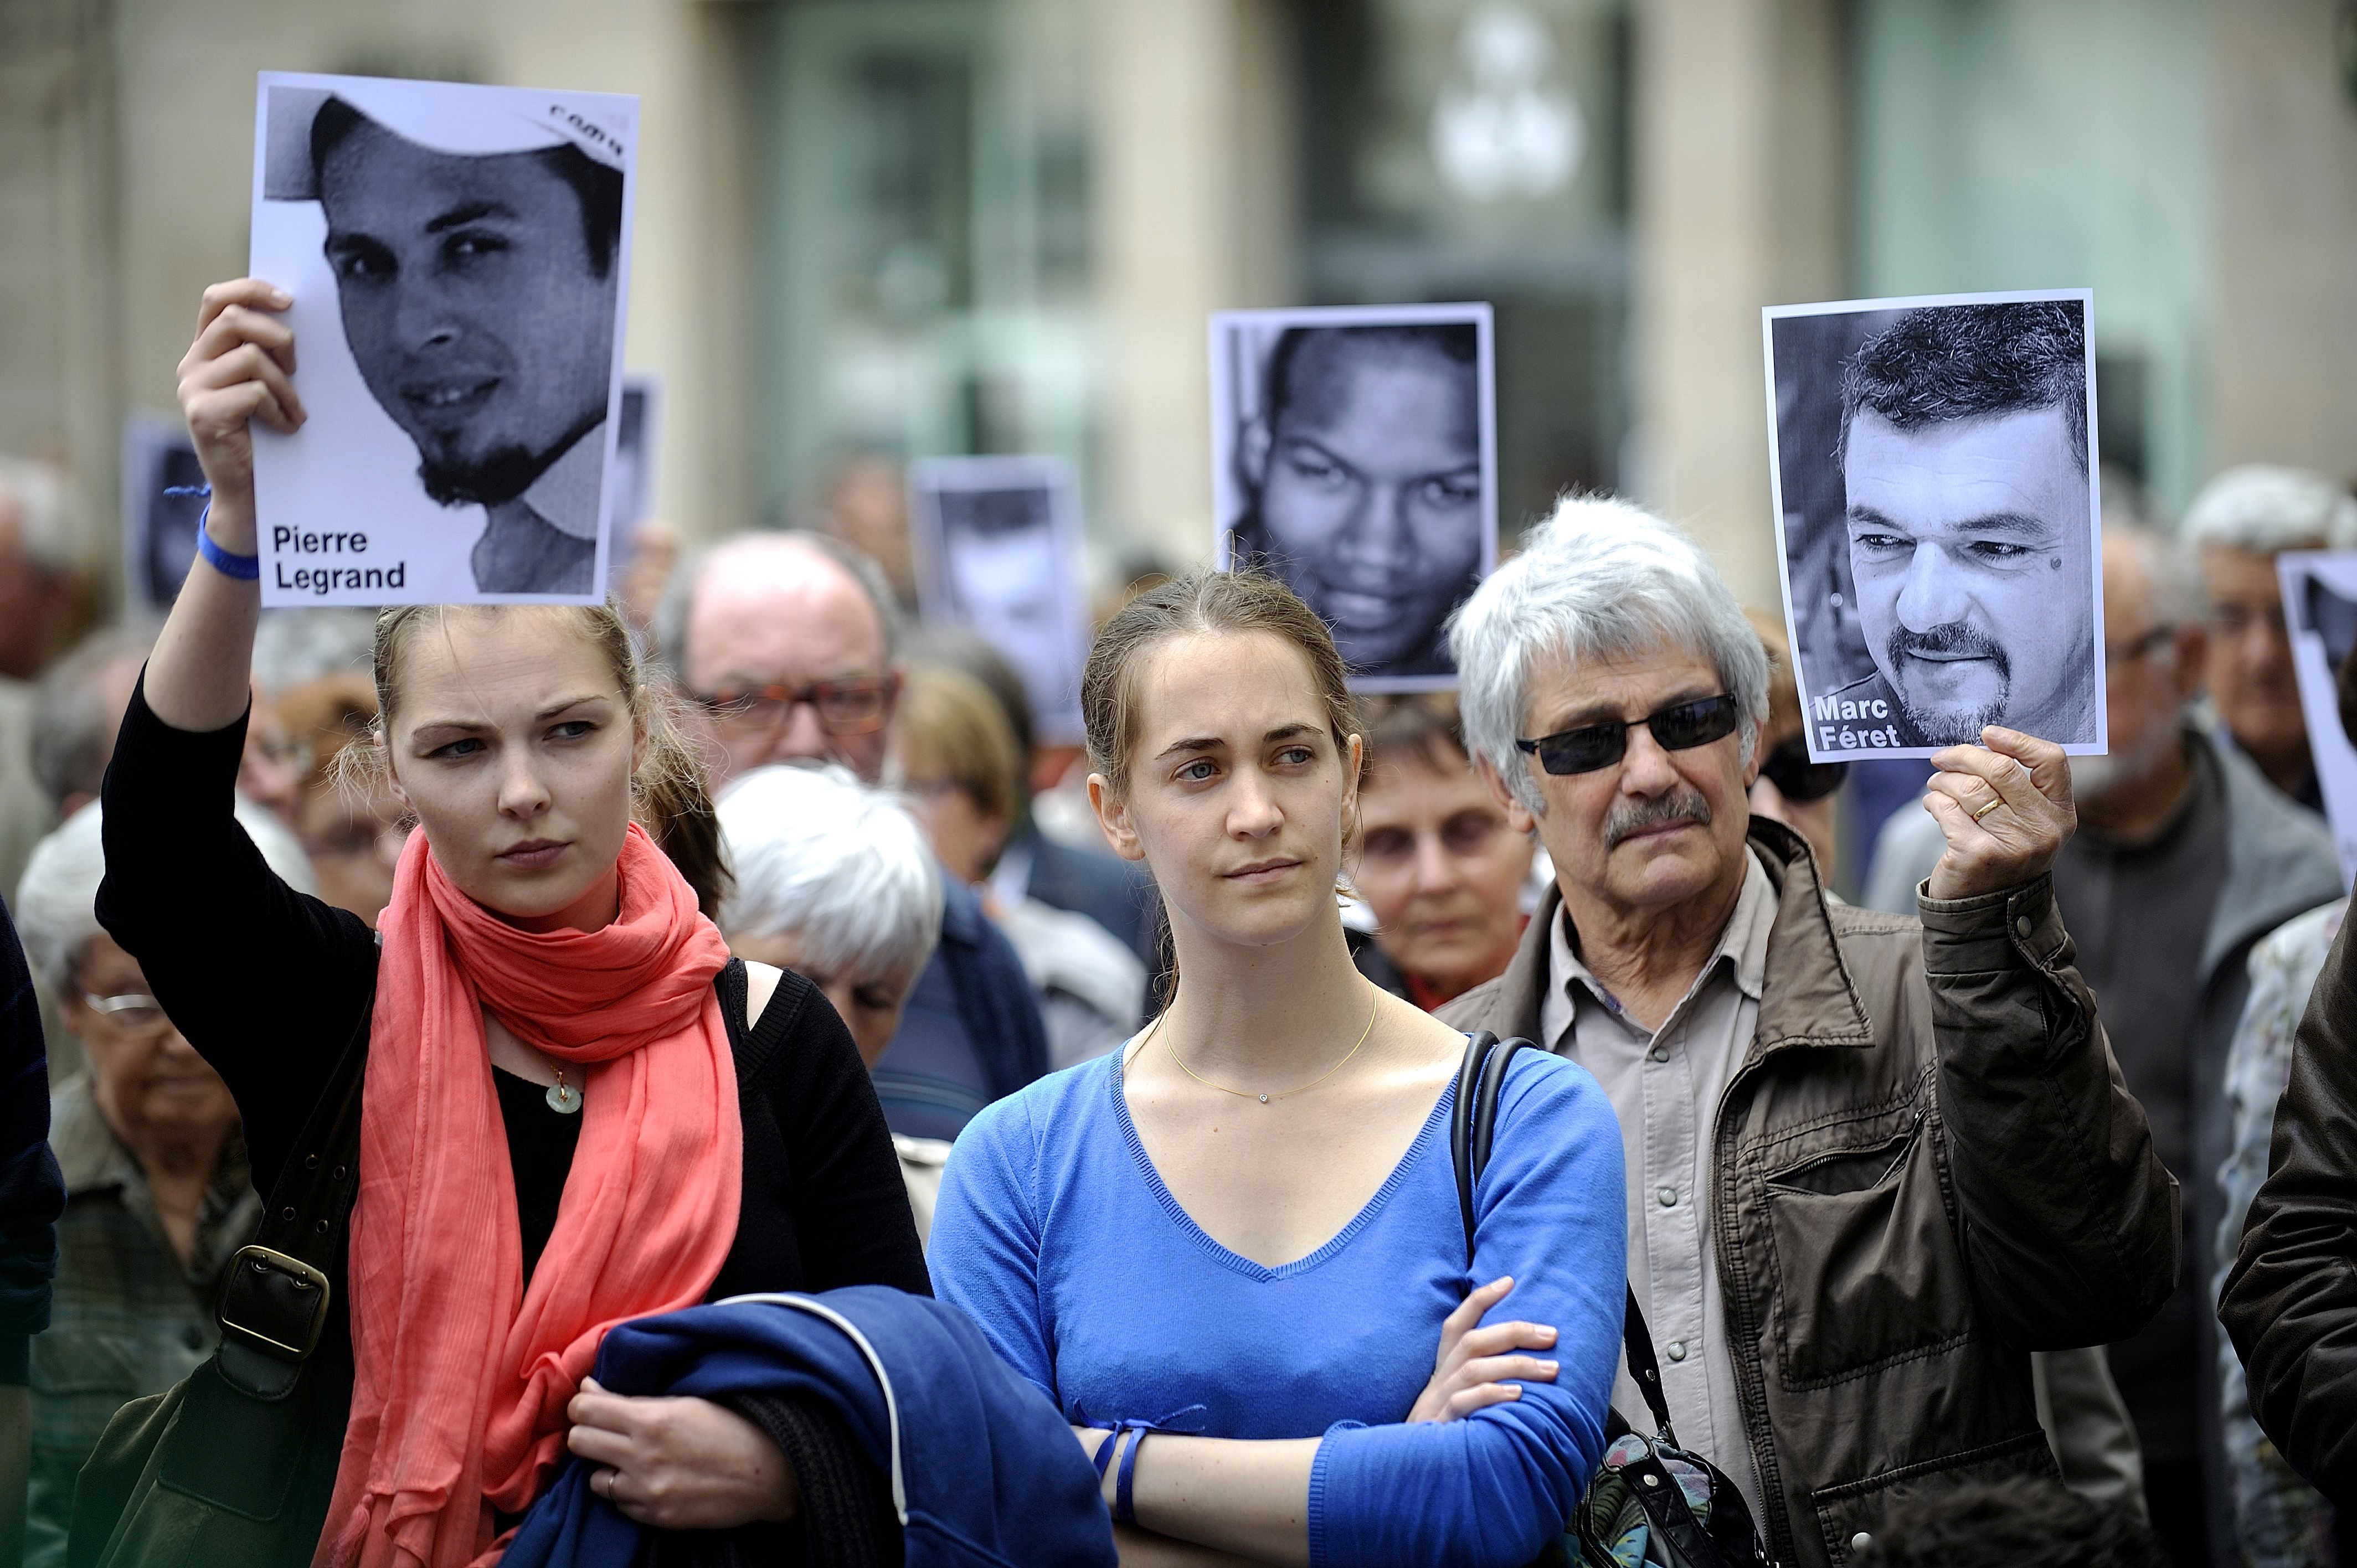 Abducted, Beaten, Beheaded—Journalists Lived Dangerously in 2014